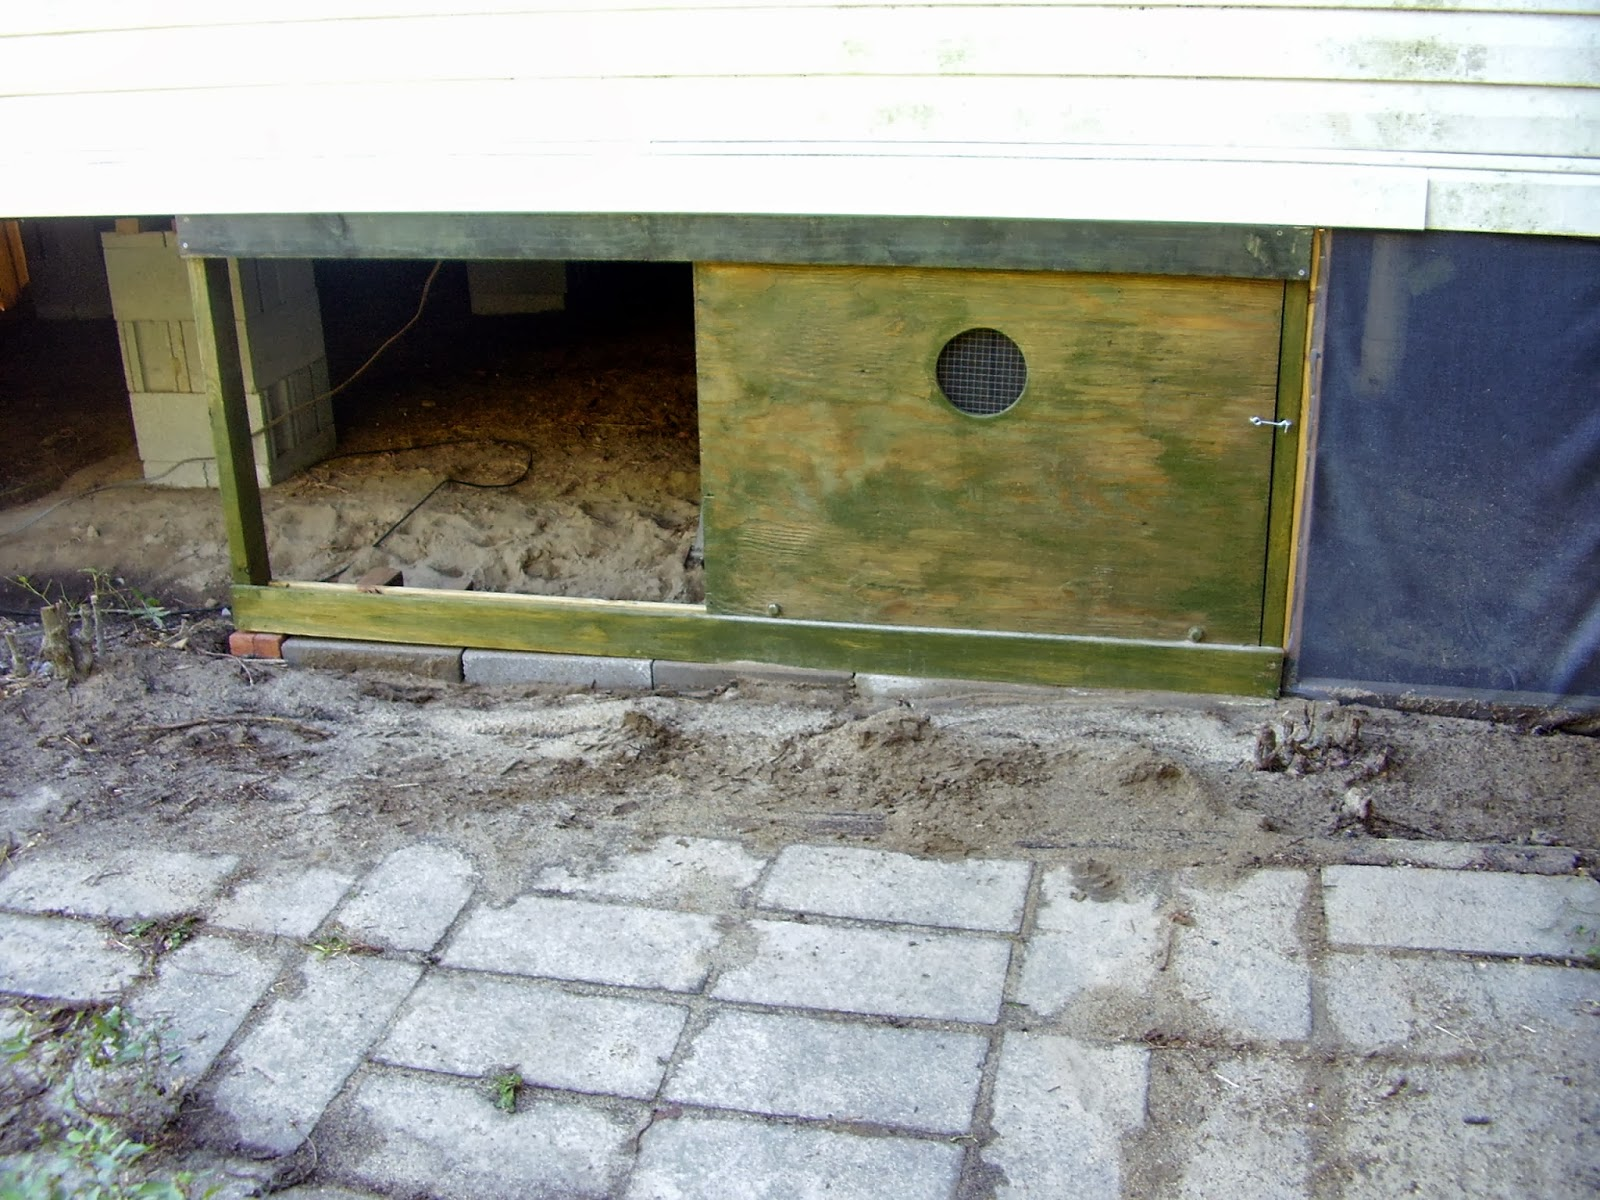 Sliding door for access to crawlspace. Mostly recycled and re-purposed materials -- plywood from the mobile home we disassembled quite a while back ... & Low Rent Renaissance: Some more mobile home skirting efforts